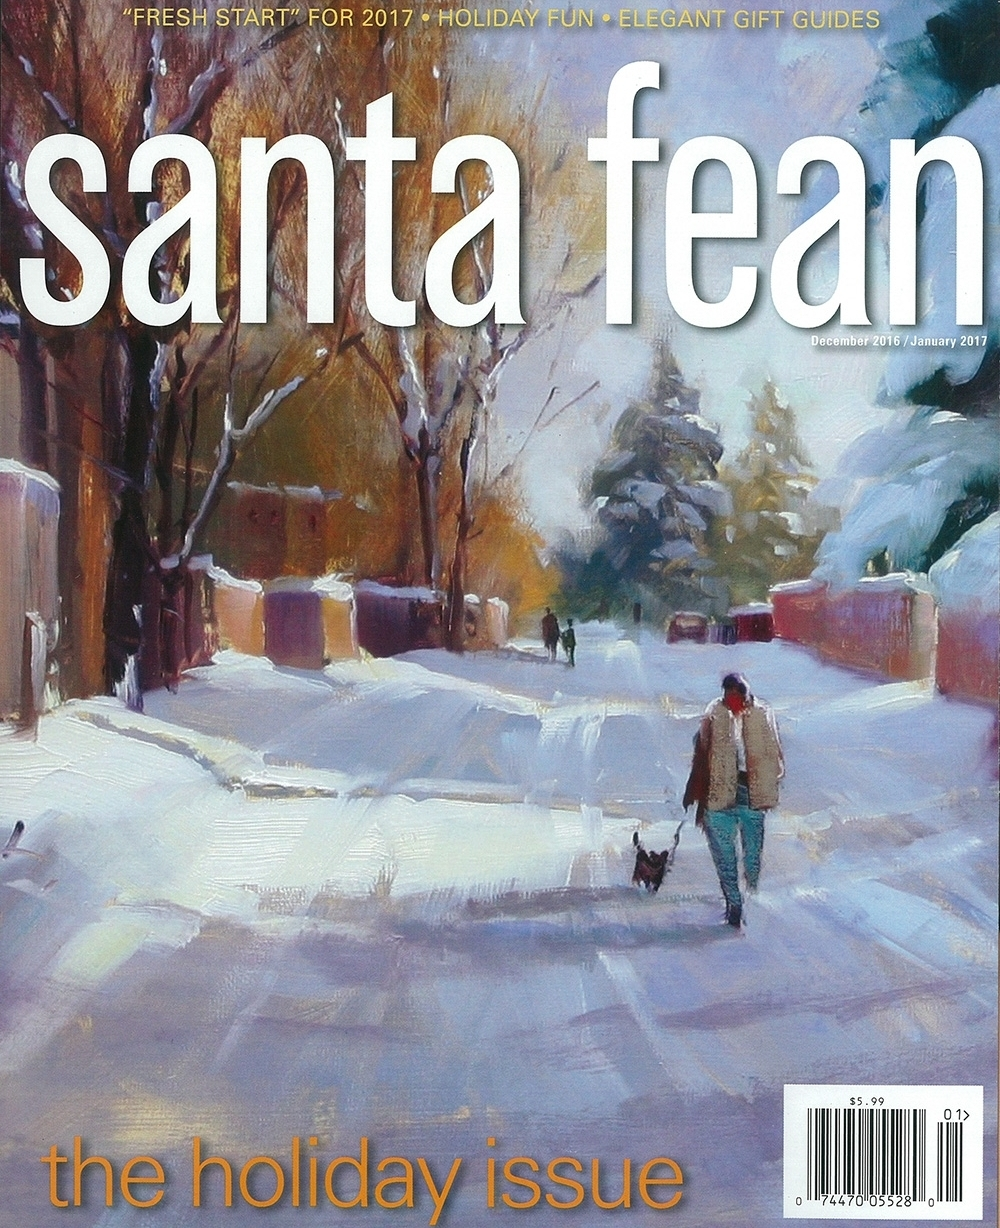 SantaFean Cover - Dec2016 72dpi.jpg